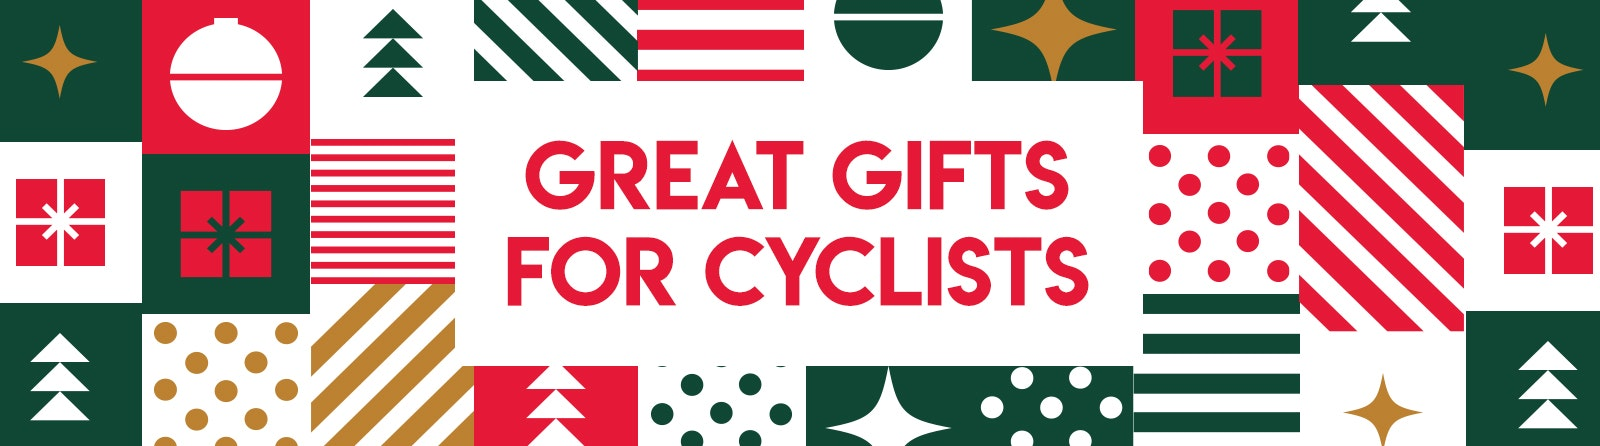 Great Gifts for Cyclists banner